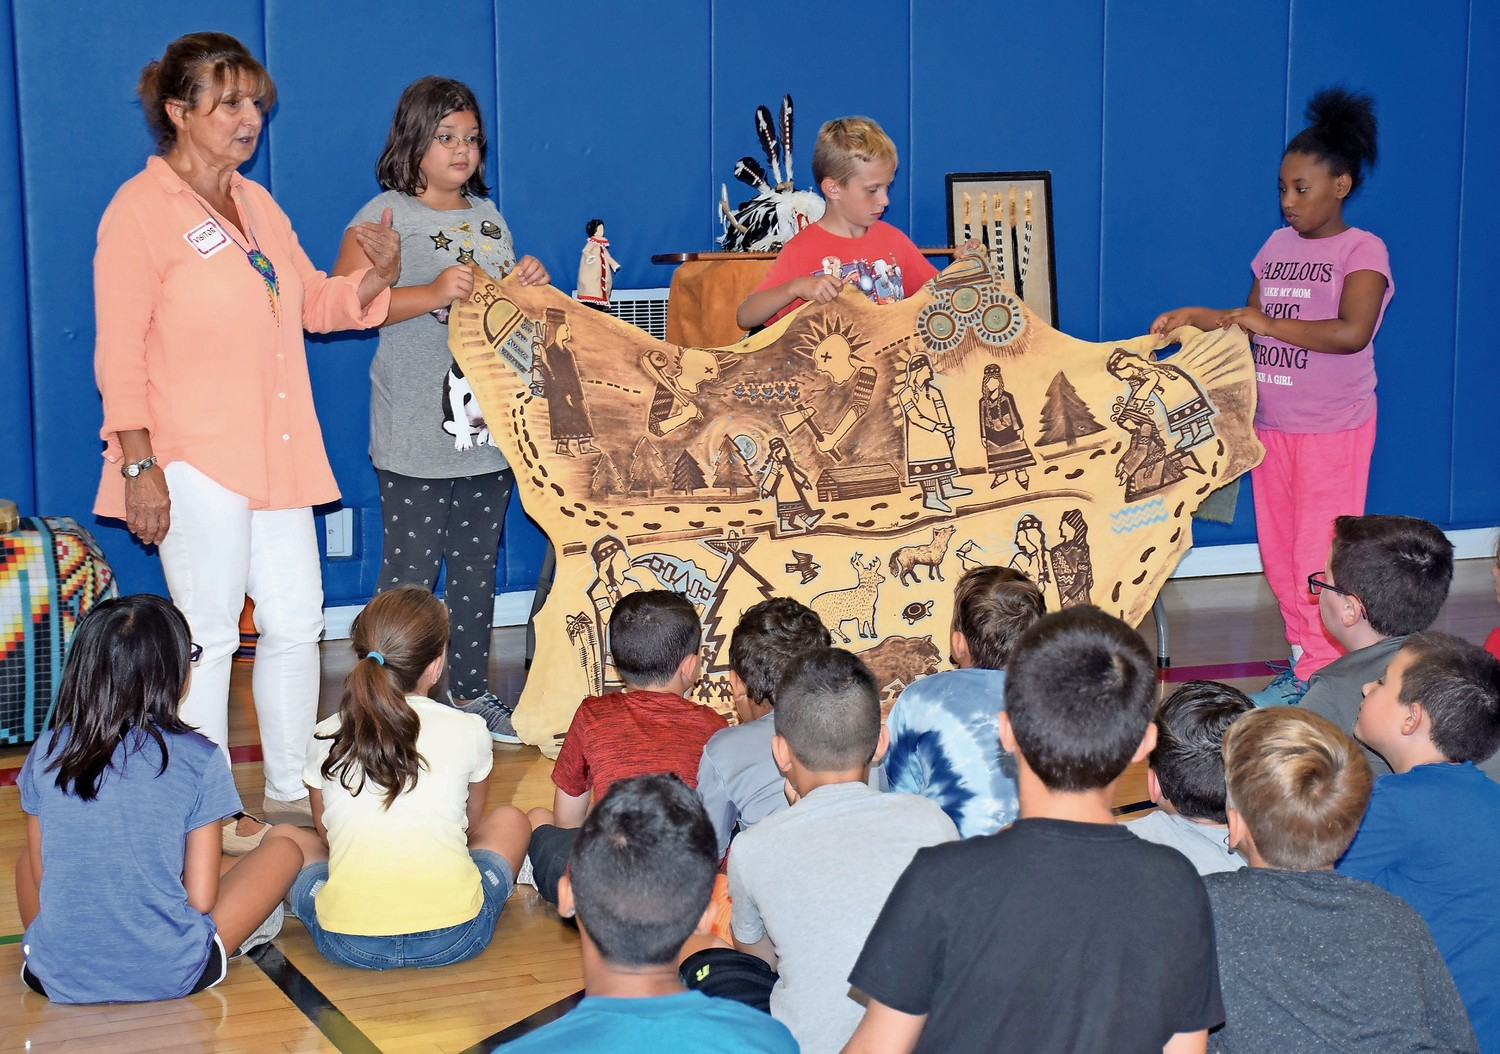 Guided by Journeys into American Indian Territory presenter Maddi Cheers, Parkway Elementary School fourth-graders learned about how the Iroquois government formed.